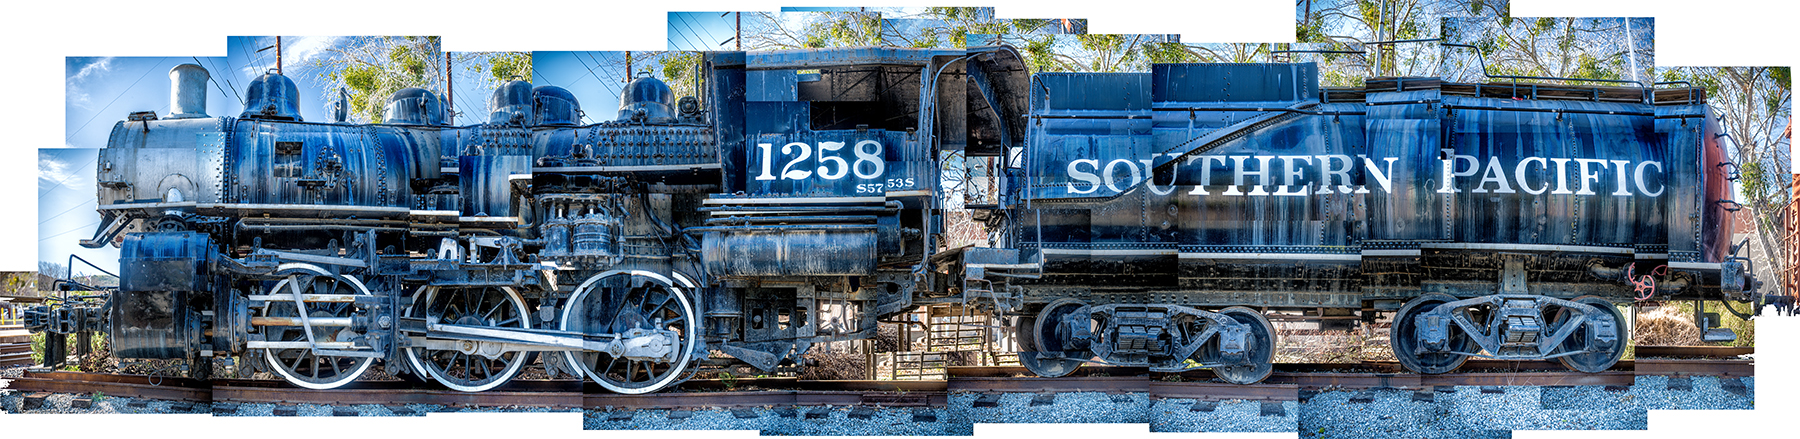 Southern Pacific.jpg